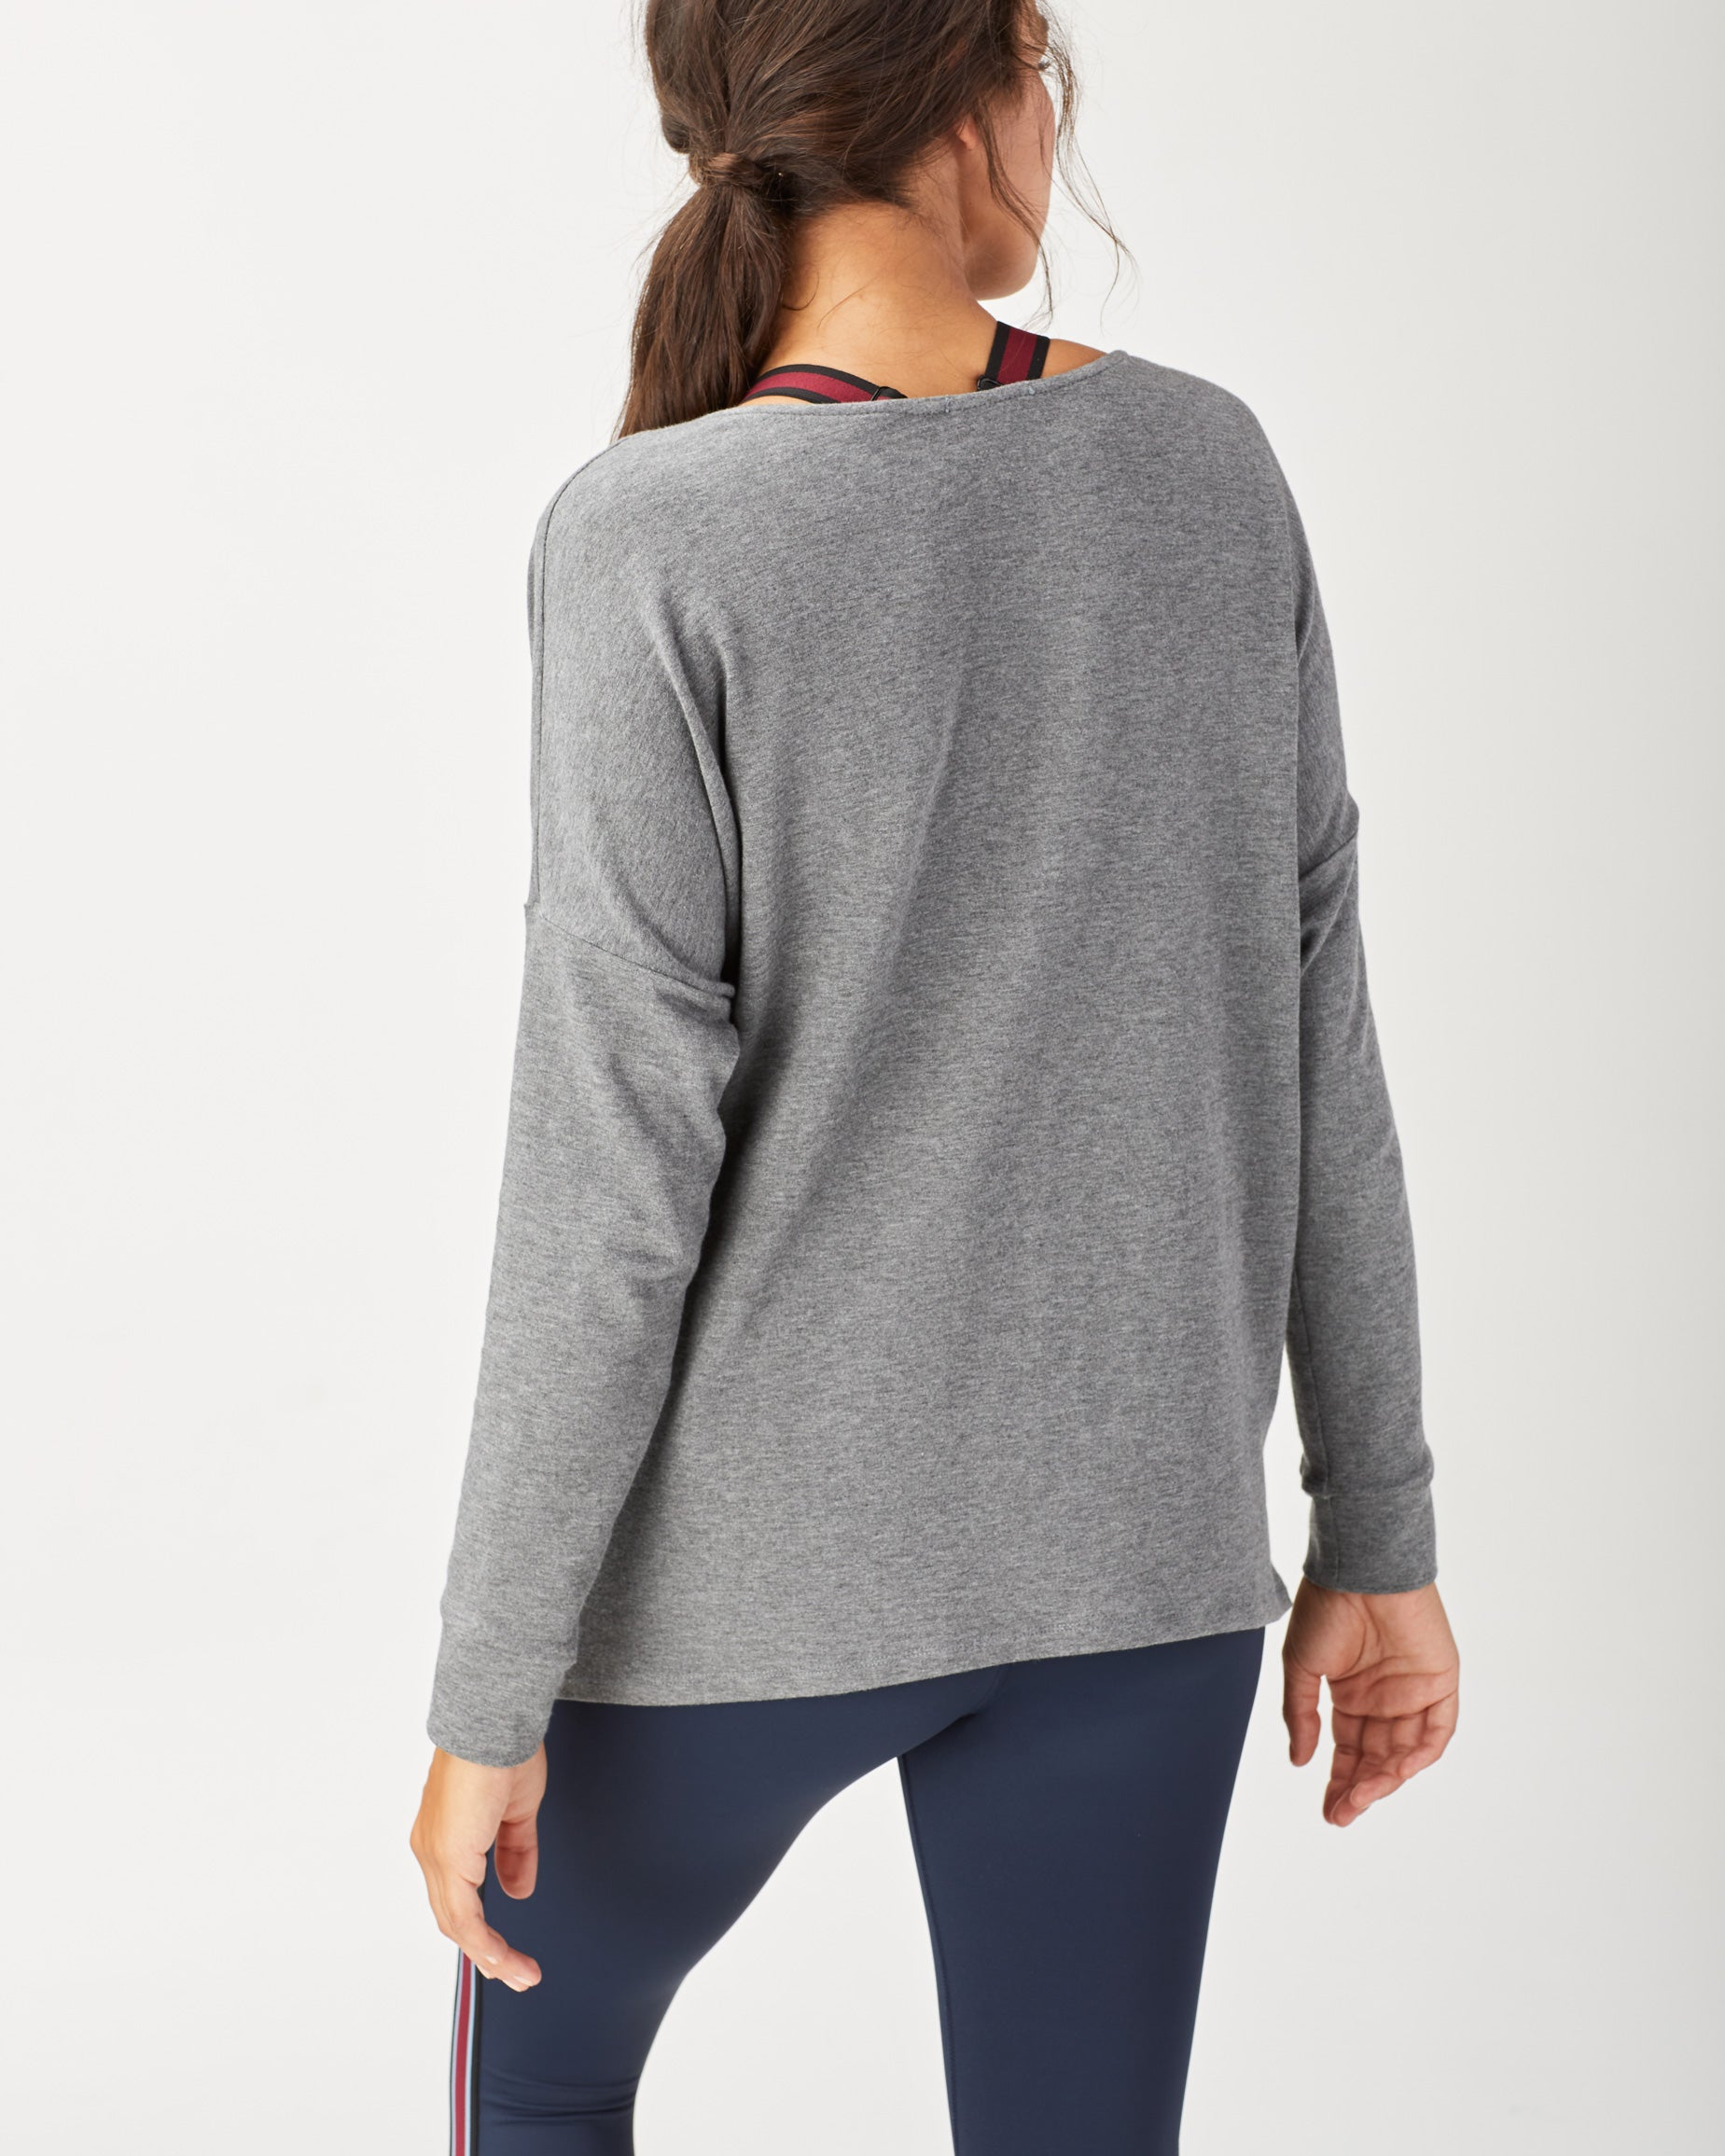 wander-sweatshirt-grey